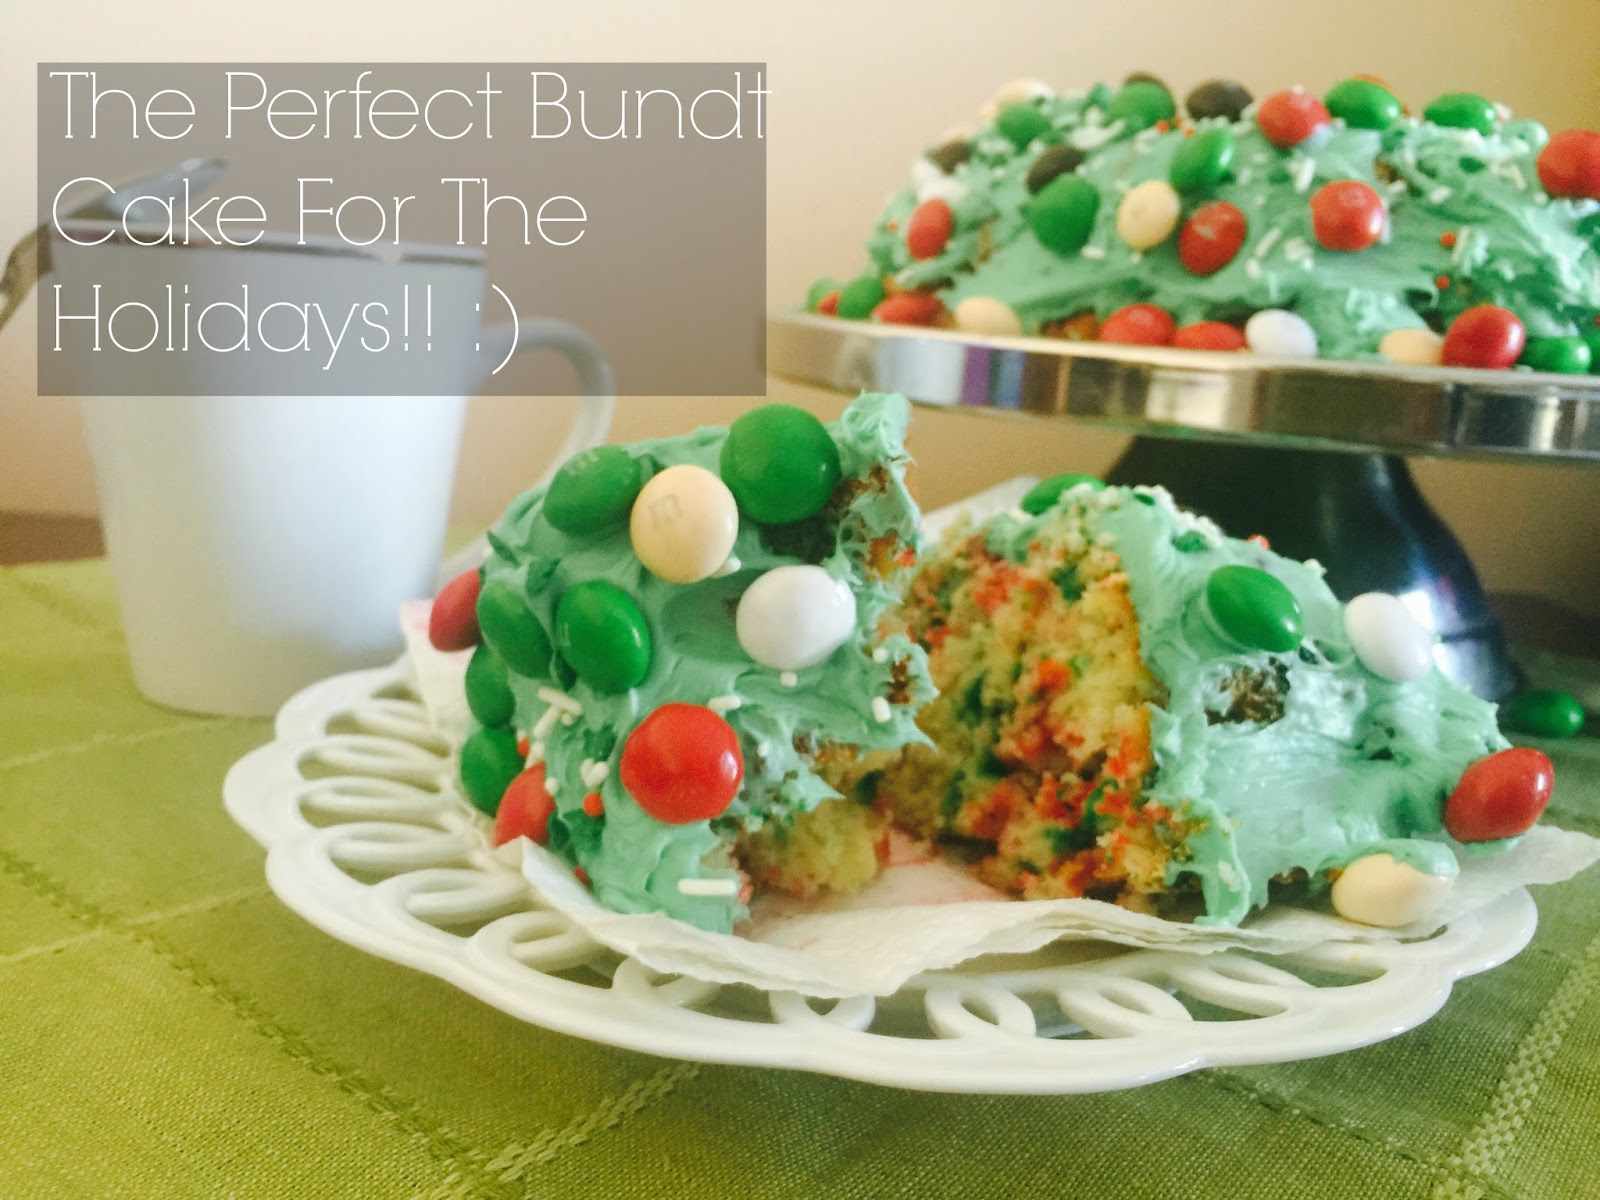 bundt cake recipe, cake recipe, holiday cake recipe, holiday fun, perfect bundt cake, what to eat for the holidays, yummy treats,